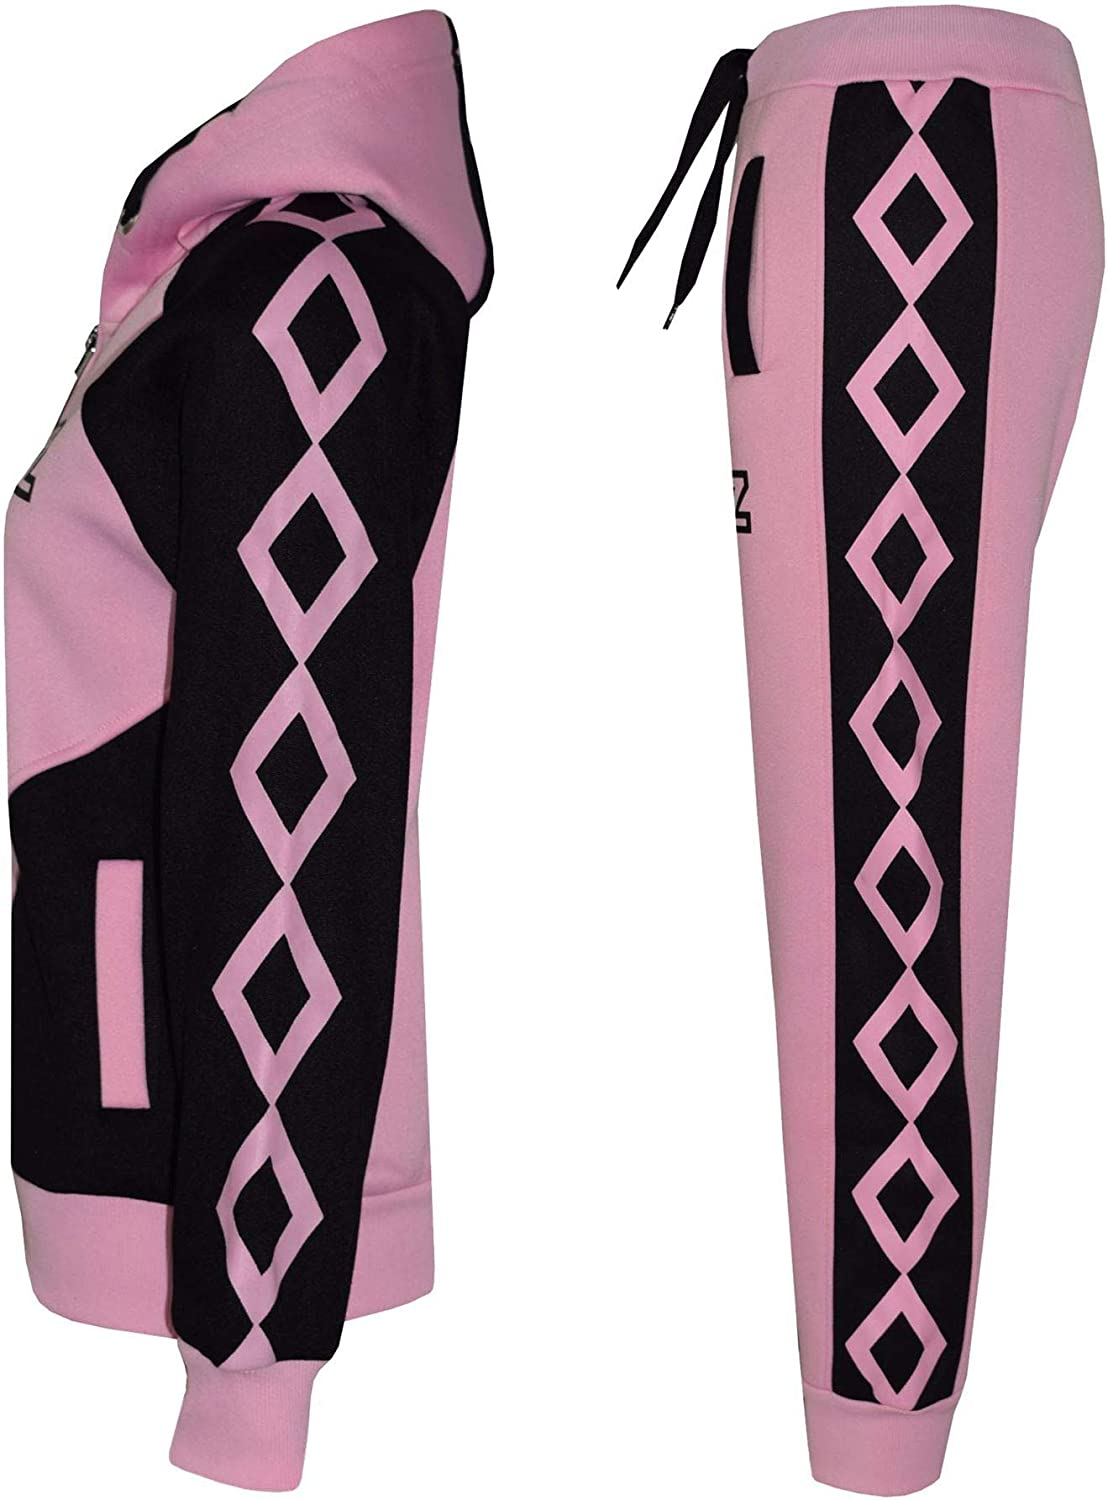 A2Z 4 Kids/® Kids Girls Tracksuit Designers Baby Pink Contrast Panel Cross Stripes Print Zipped Top Hoodie /& Botom Jogging Suit Joggers Age 5 6 7 8 9 10 11 12 13 Years